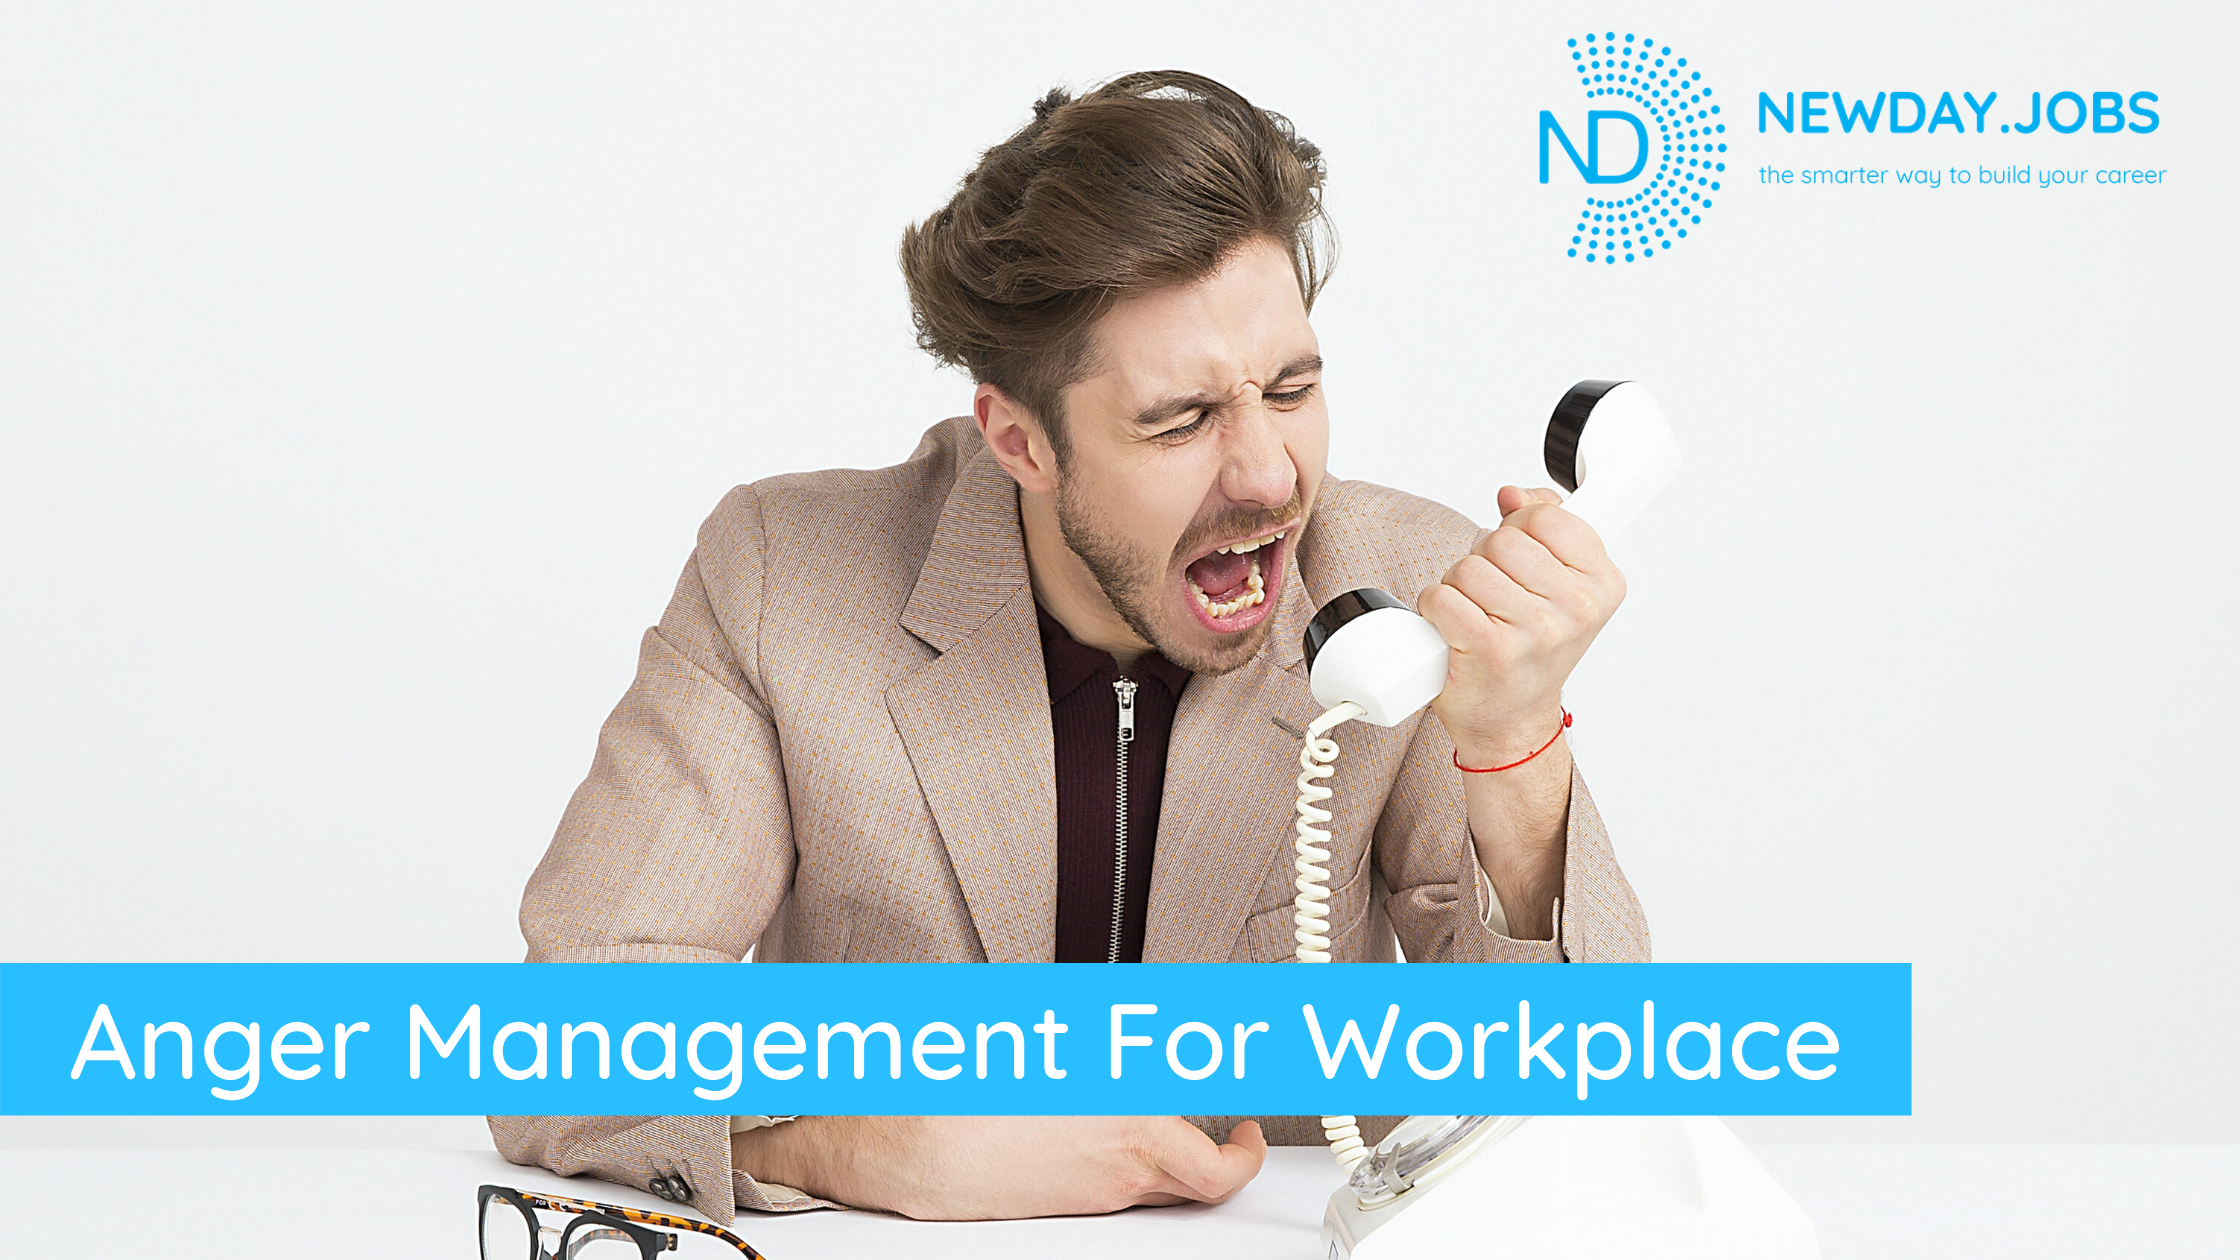 Anger Management For Workplace | Read more blogs at New Day Jobs